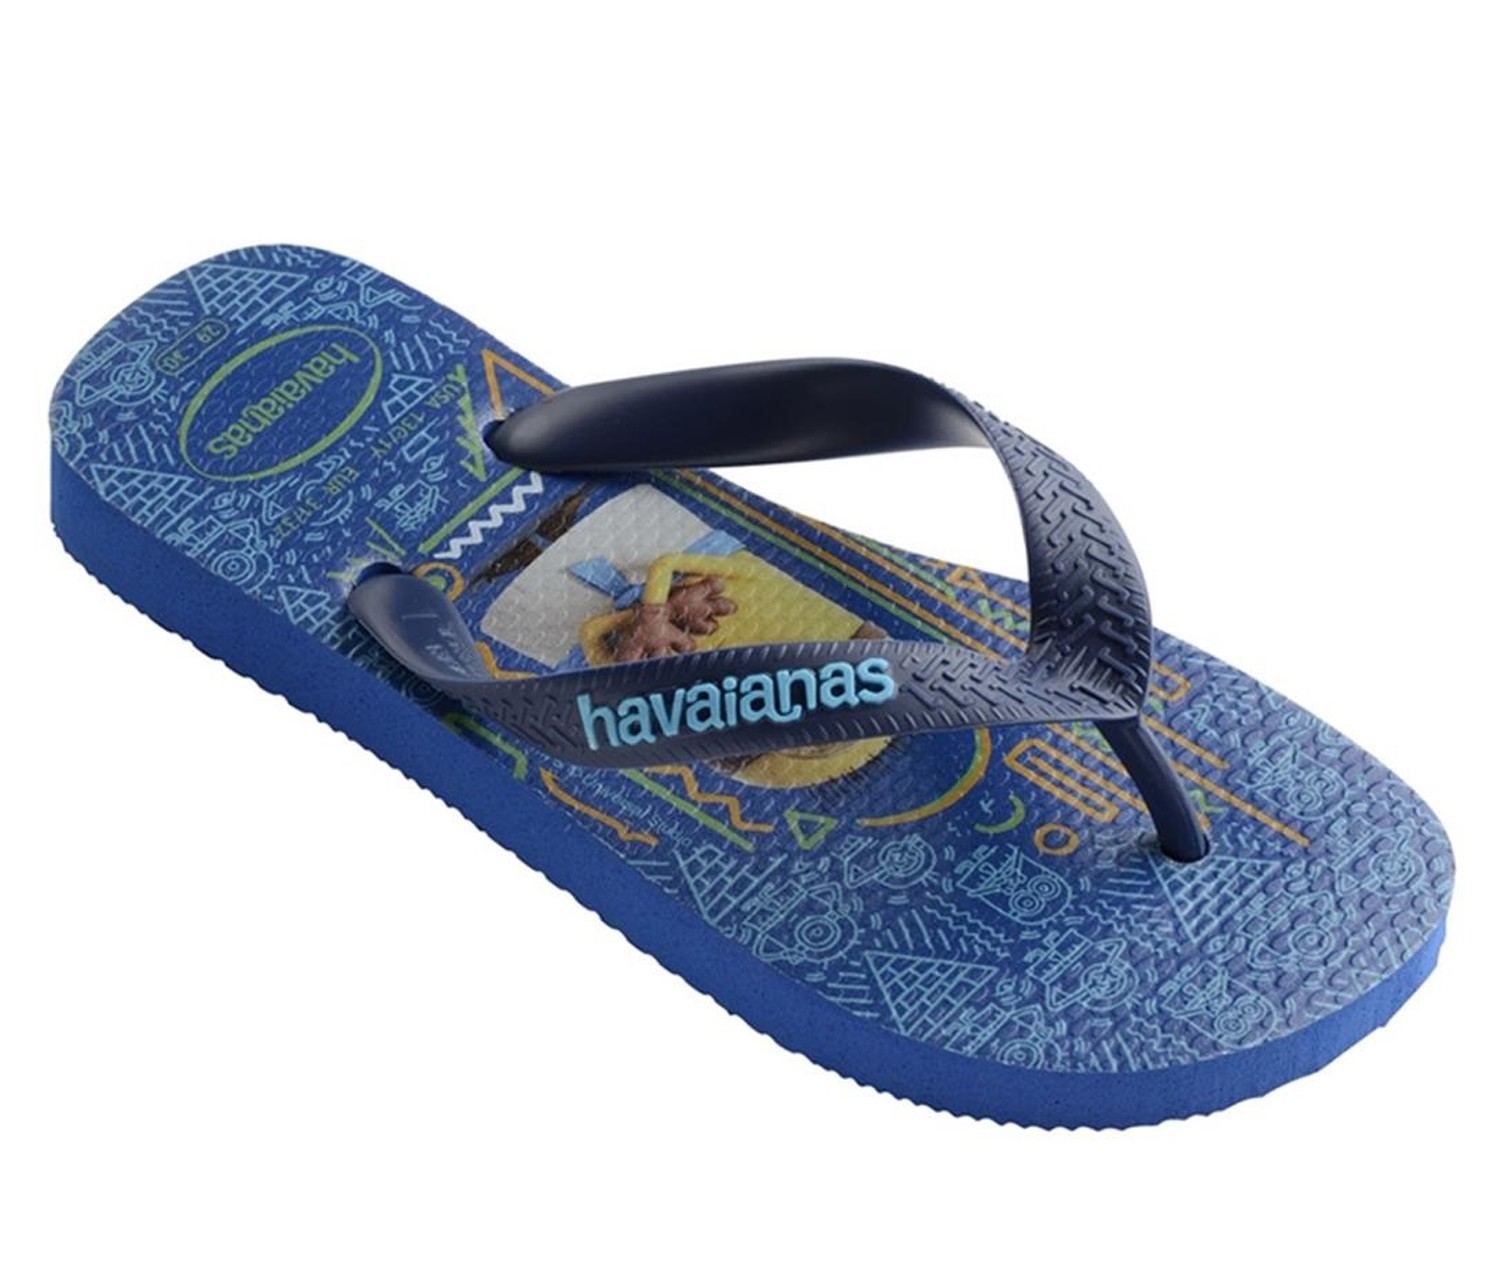 a982188039a7 Shoes   Bags Havaianas Printed Flip Flops Kids Minions 4133126